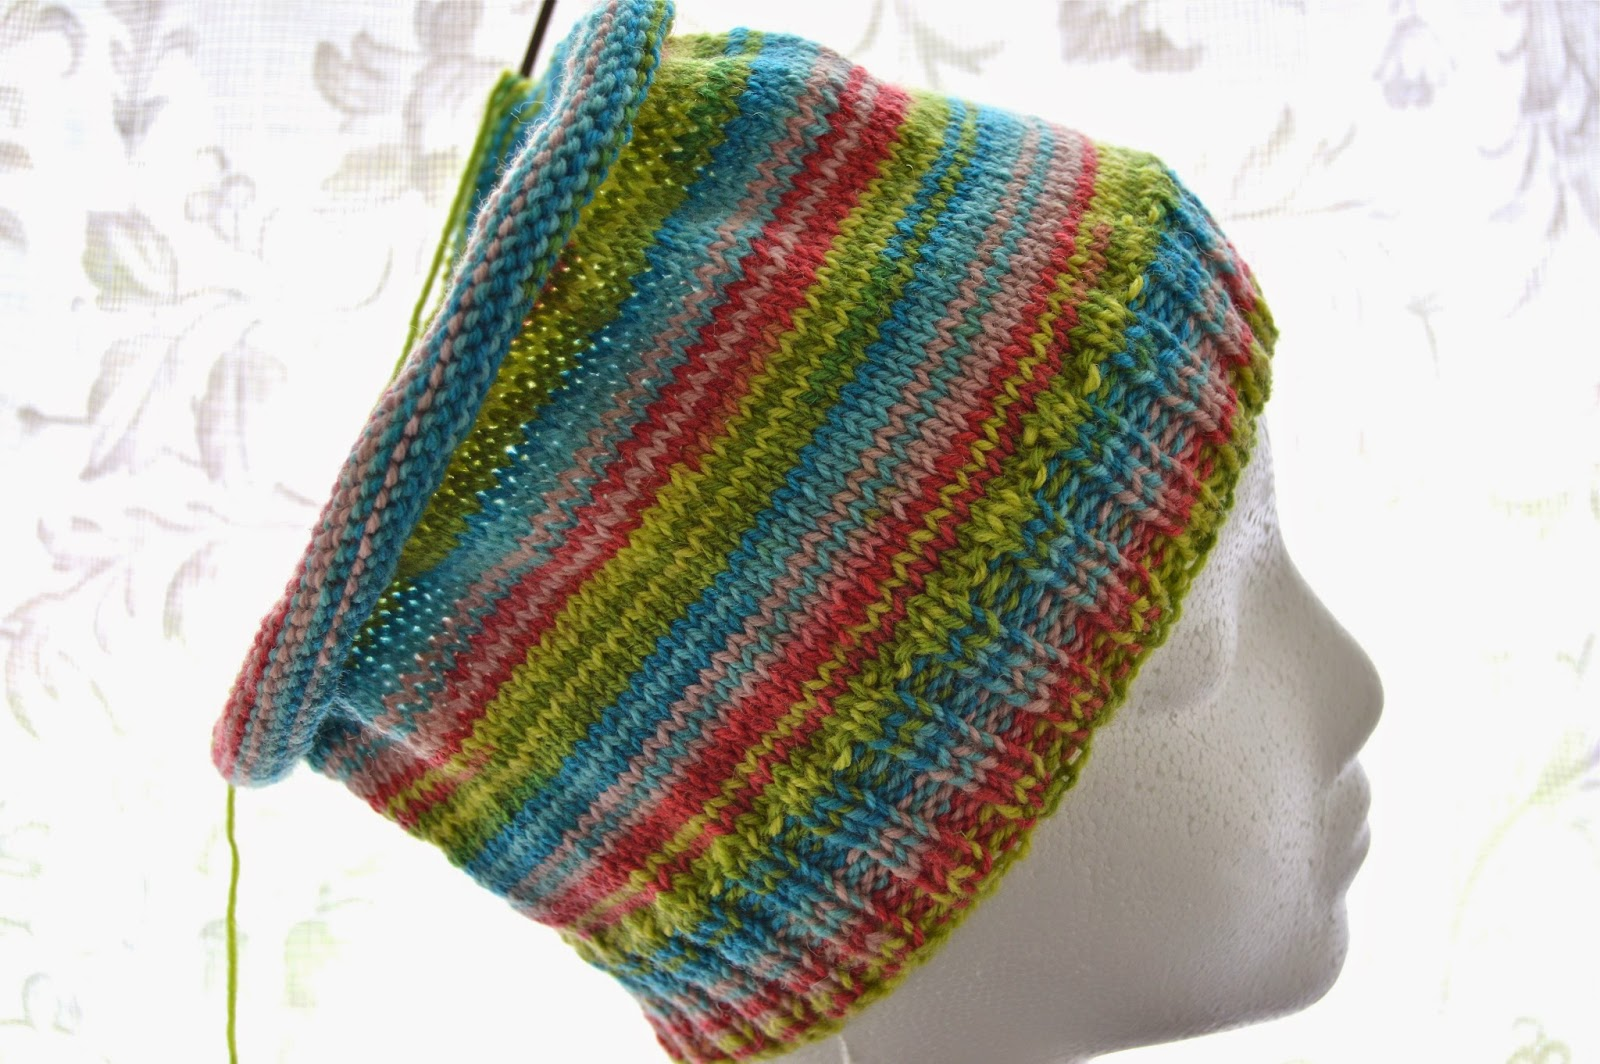 Patons Kroy Socks yarn in Meadow Stripes slouchy girls or womens hat